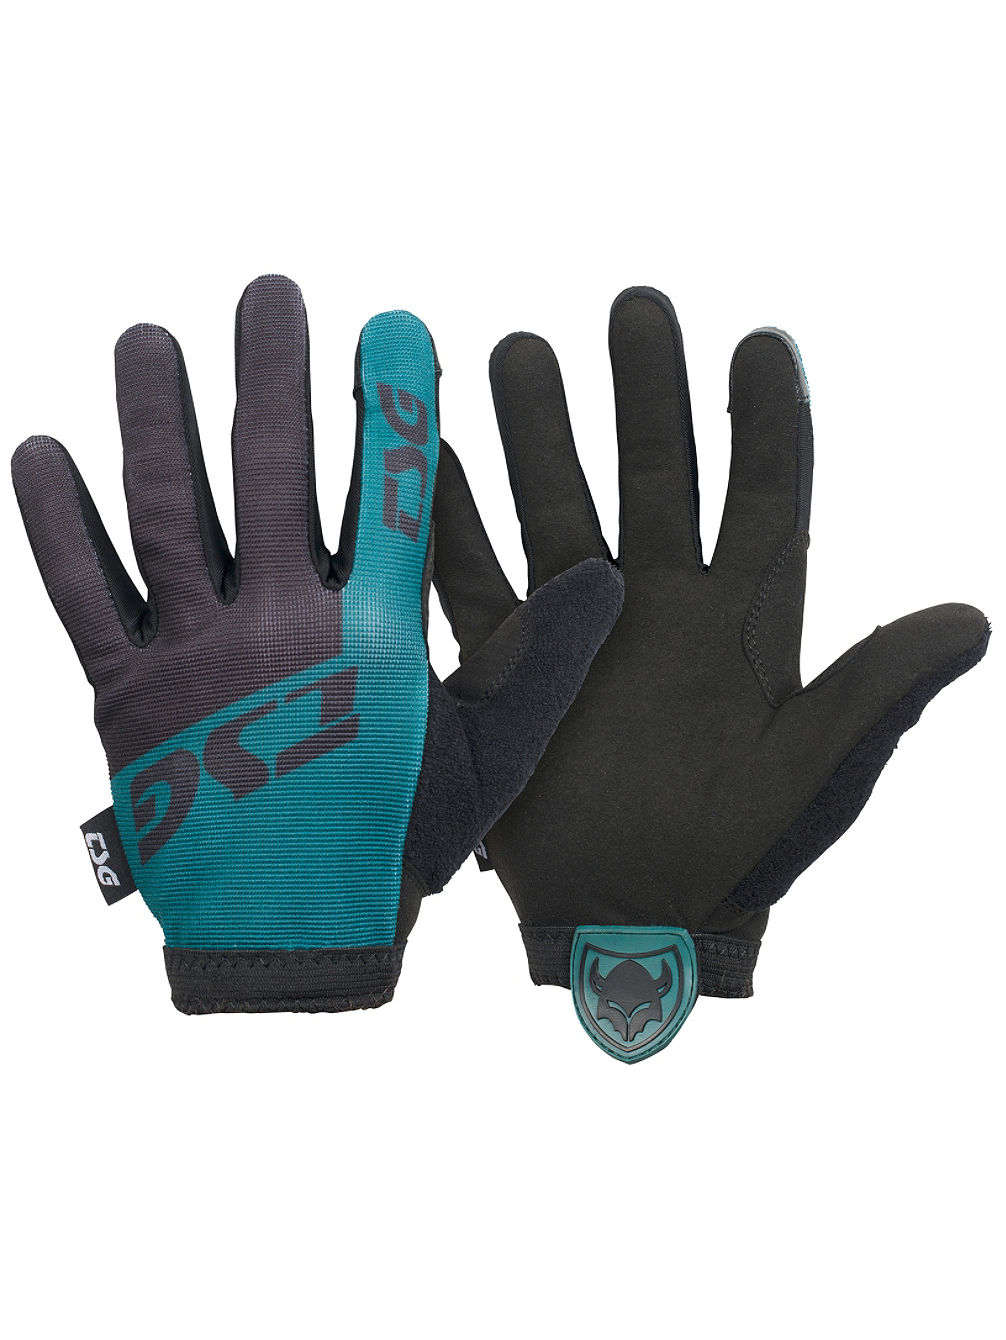 Slim Bike Gloves